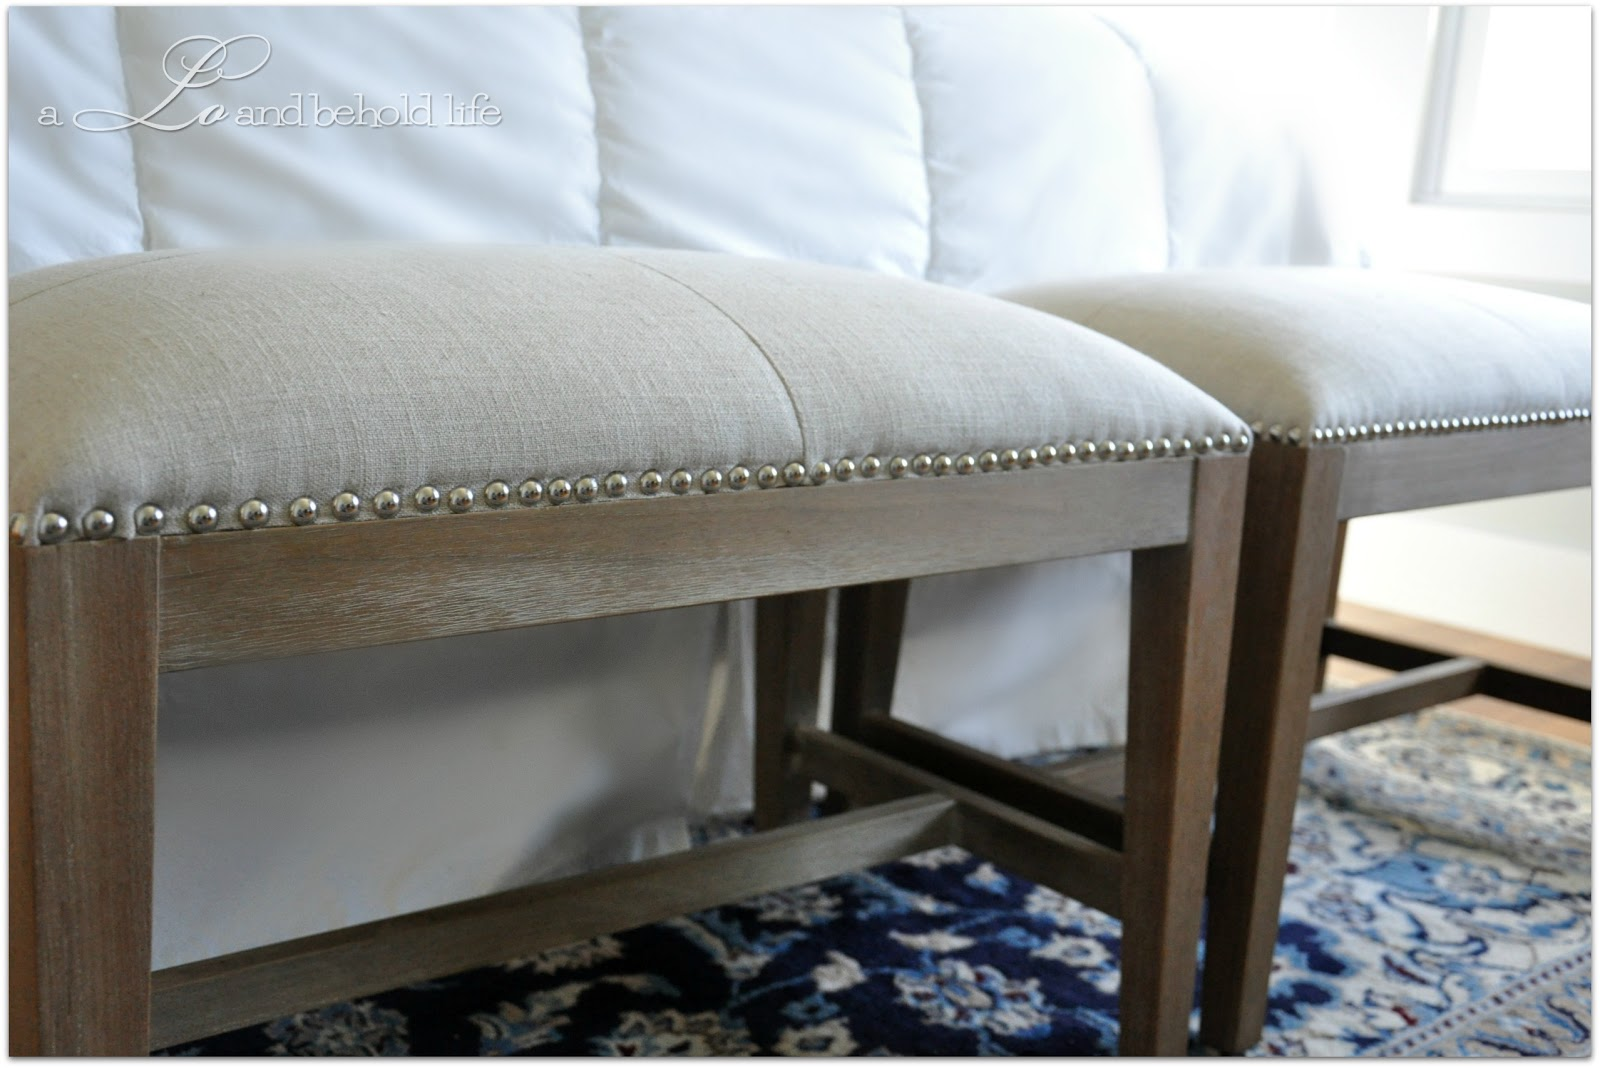 Homegoods Finds | A Lo and Behold Life